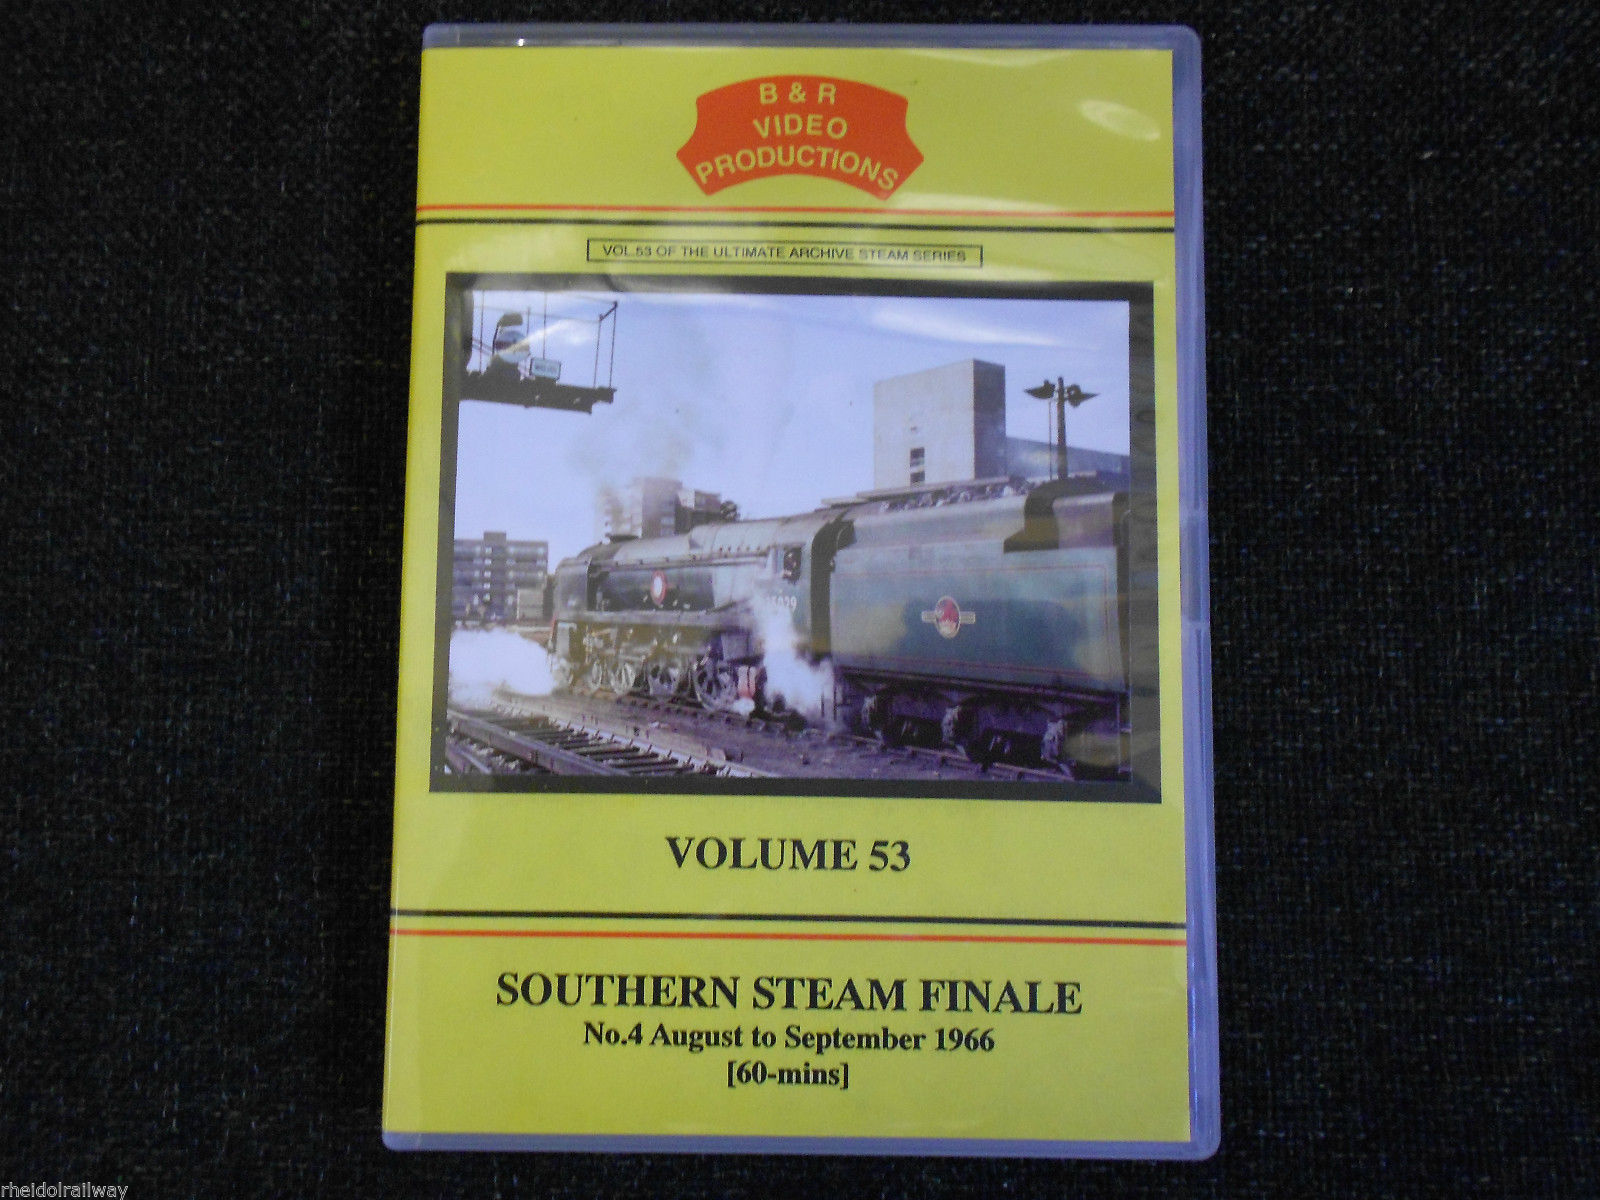 Penistone, Isle of Wight, Swanage, Southern Steam Finale No. 4 B&R Vol 53 DVD